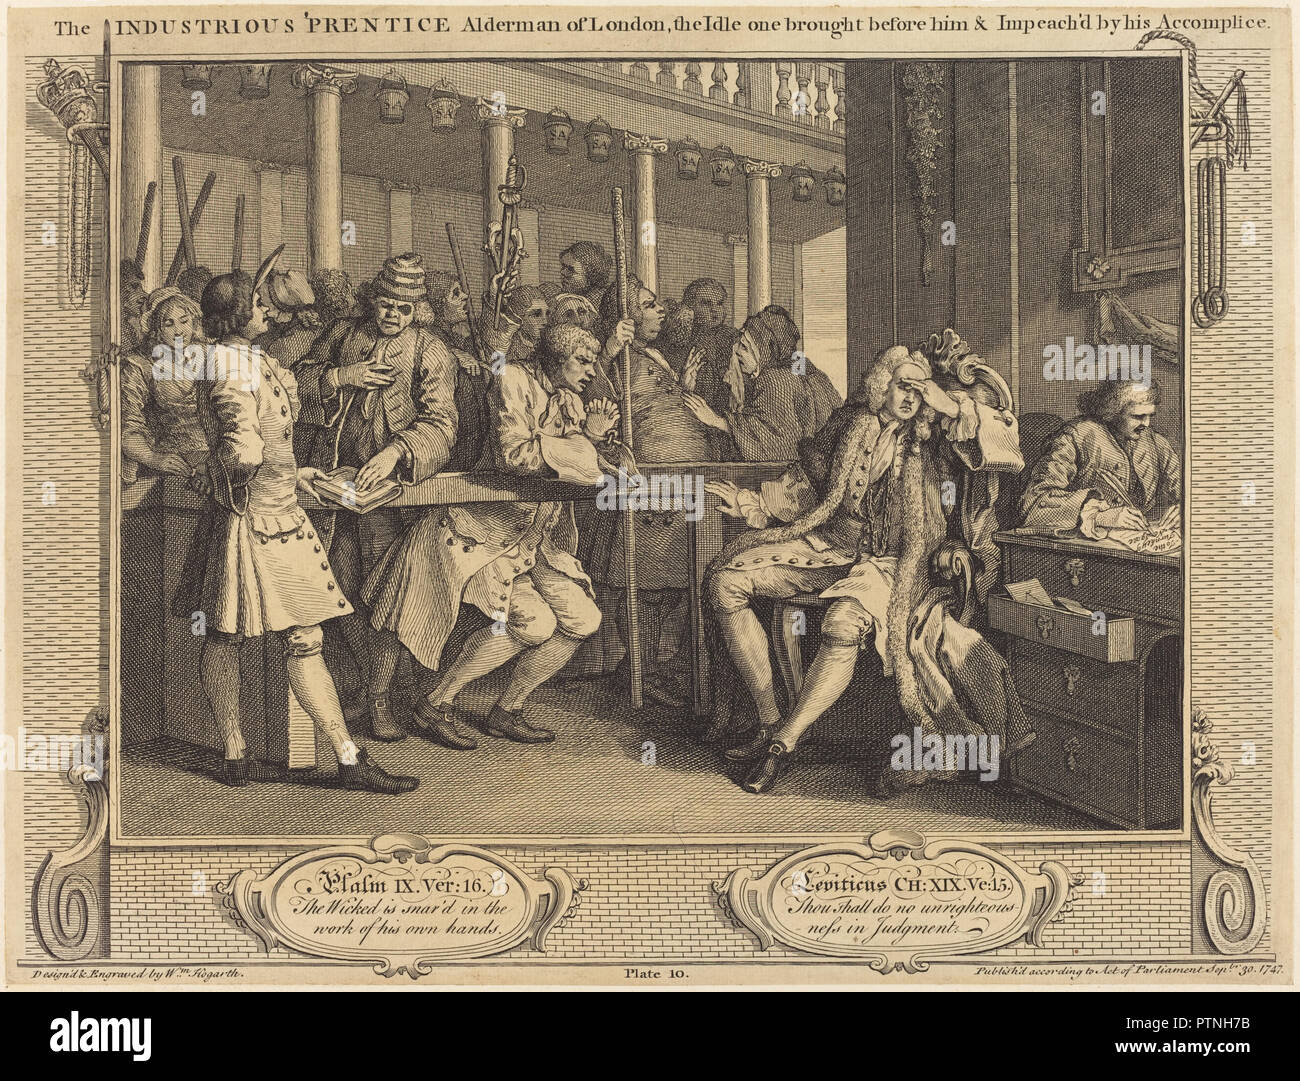 The Industrious 'Prentice Alderman of London,the Idle one brought before him & impea ch'd by his Accomplice. Dated: 1747. Medium: etching and engraving. Museum: National Gallery of Art, Washington DC. Author: William Hogarth. Stock Photo